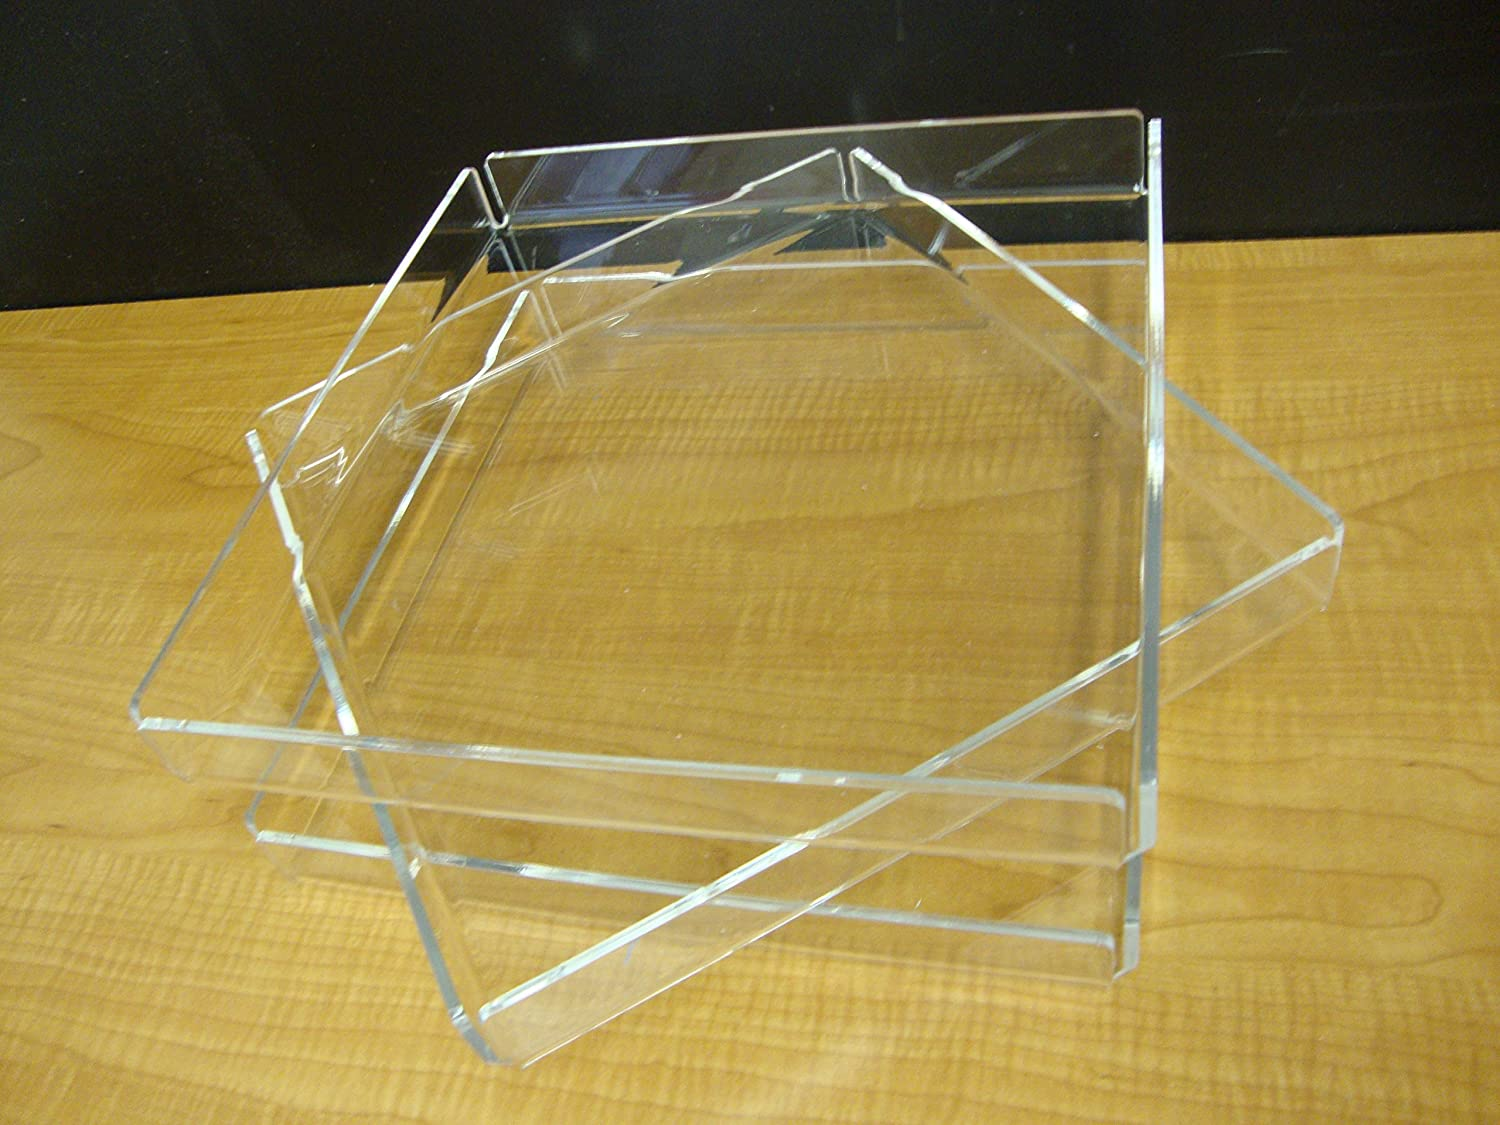 35% OFF 305Displays 3 CLEAR Acrylic Brand new trays Bakery Pastry Donut Bage bread